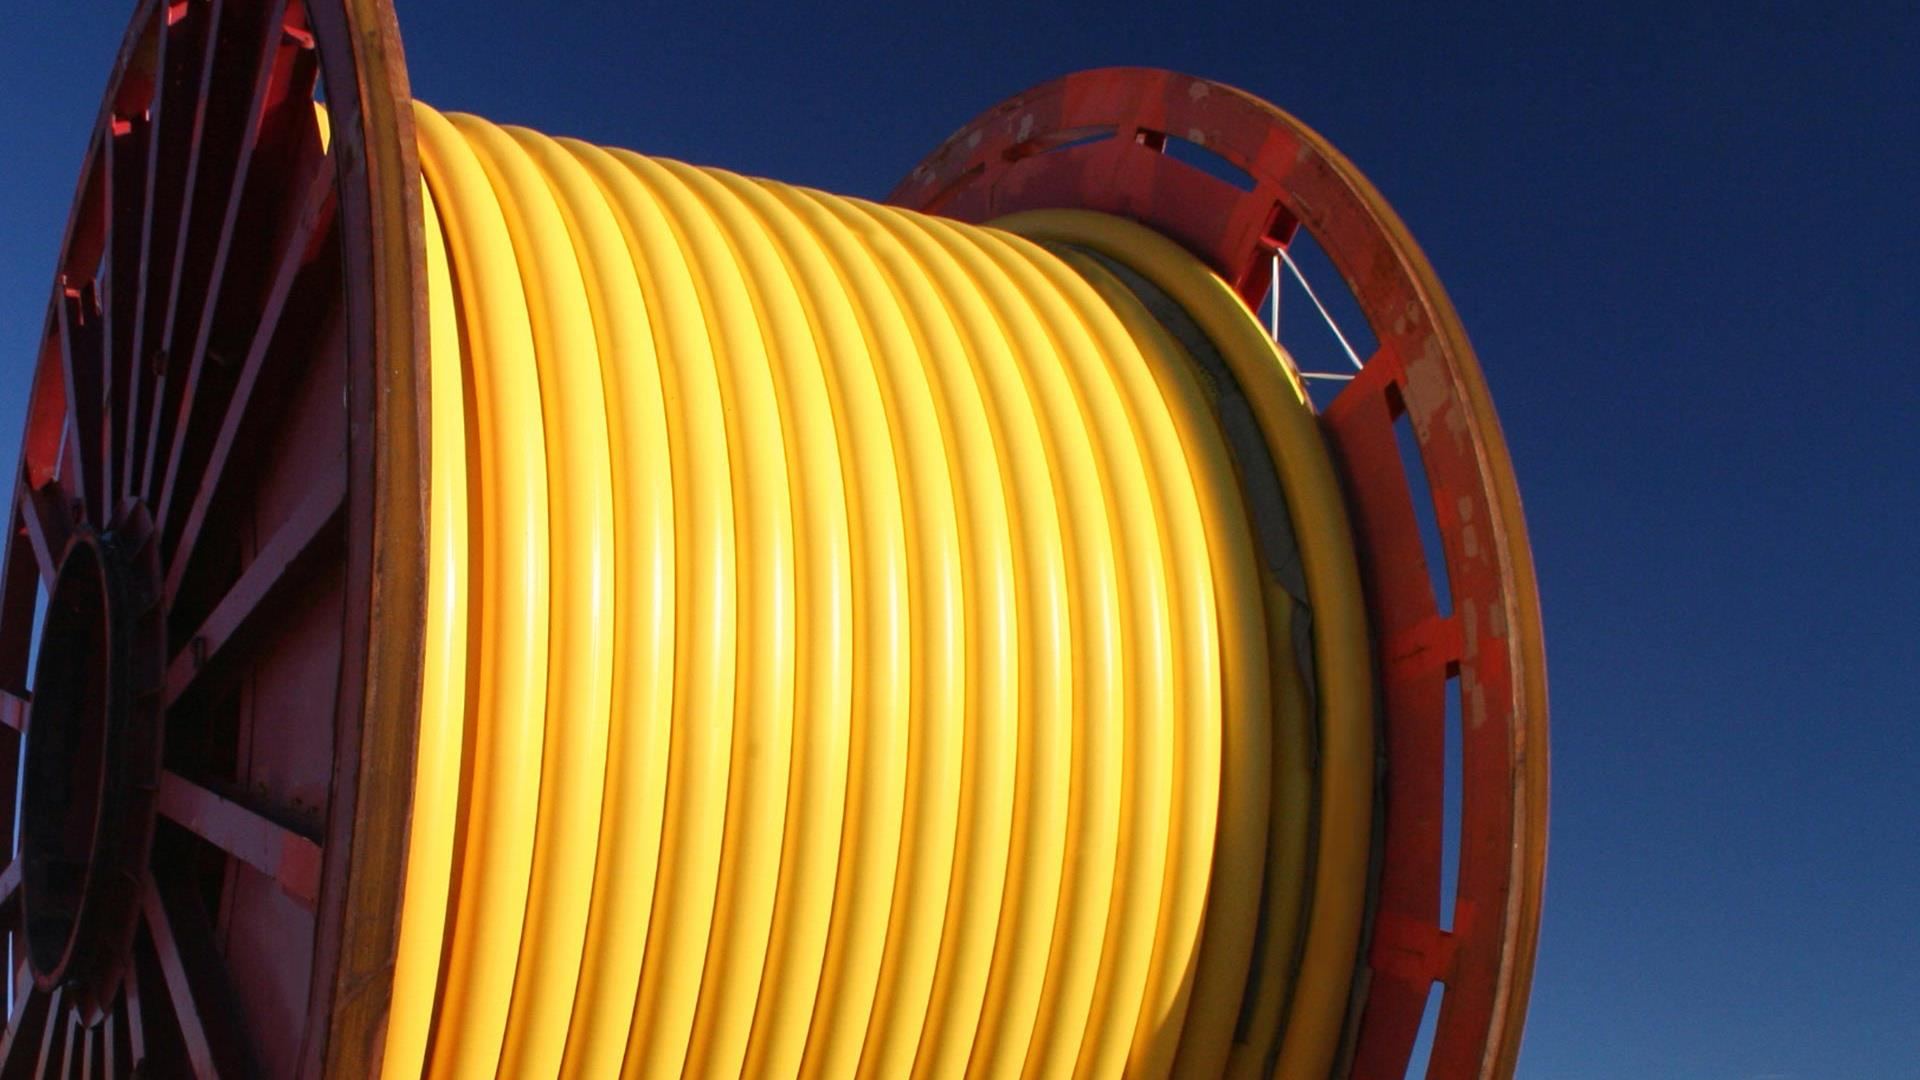 Spole for flexible pipe storage